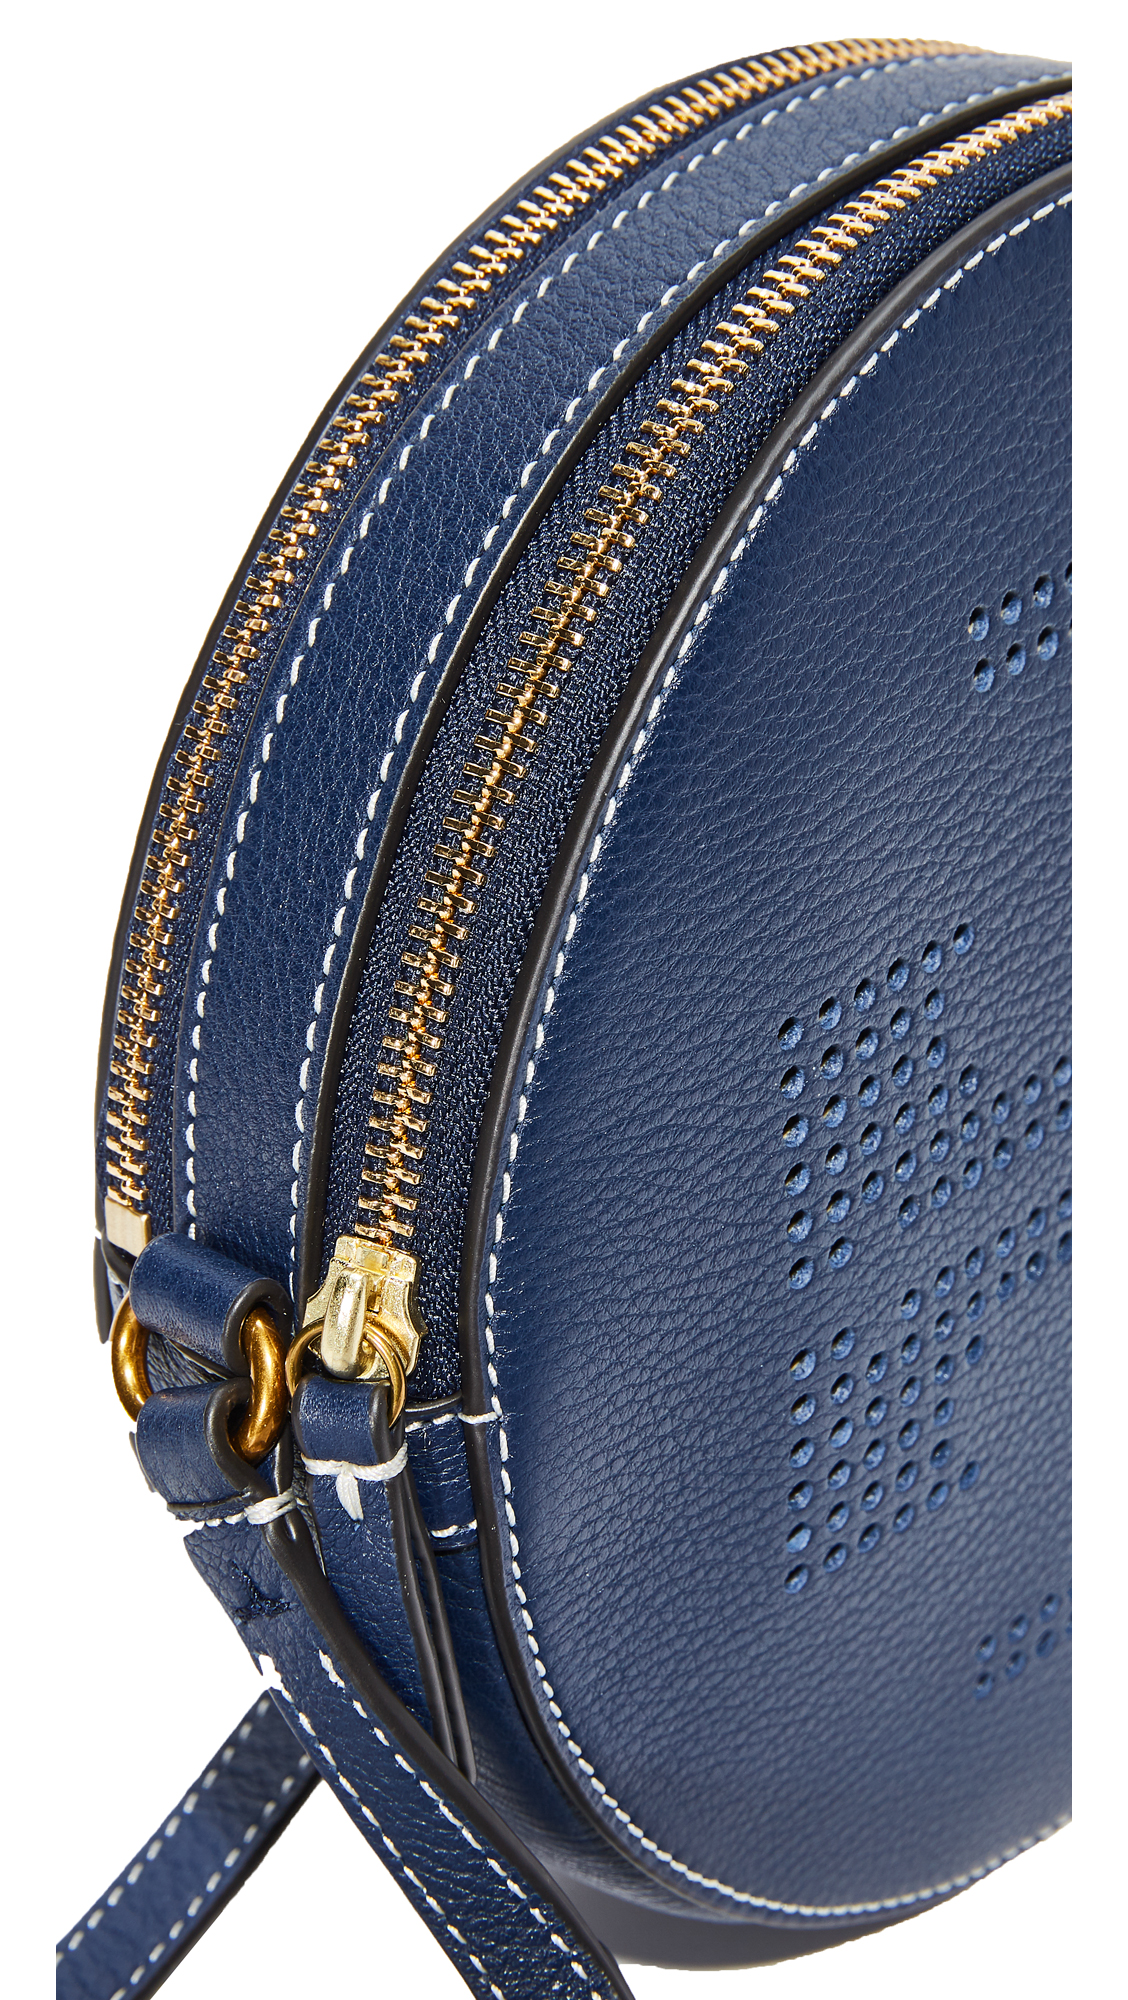 d73da915e Tory Burch Perforated Logo Cross Body Bag